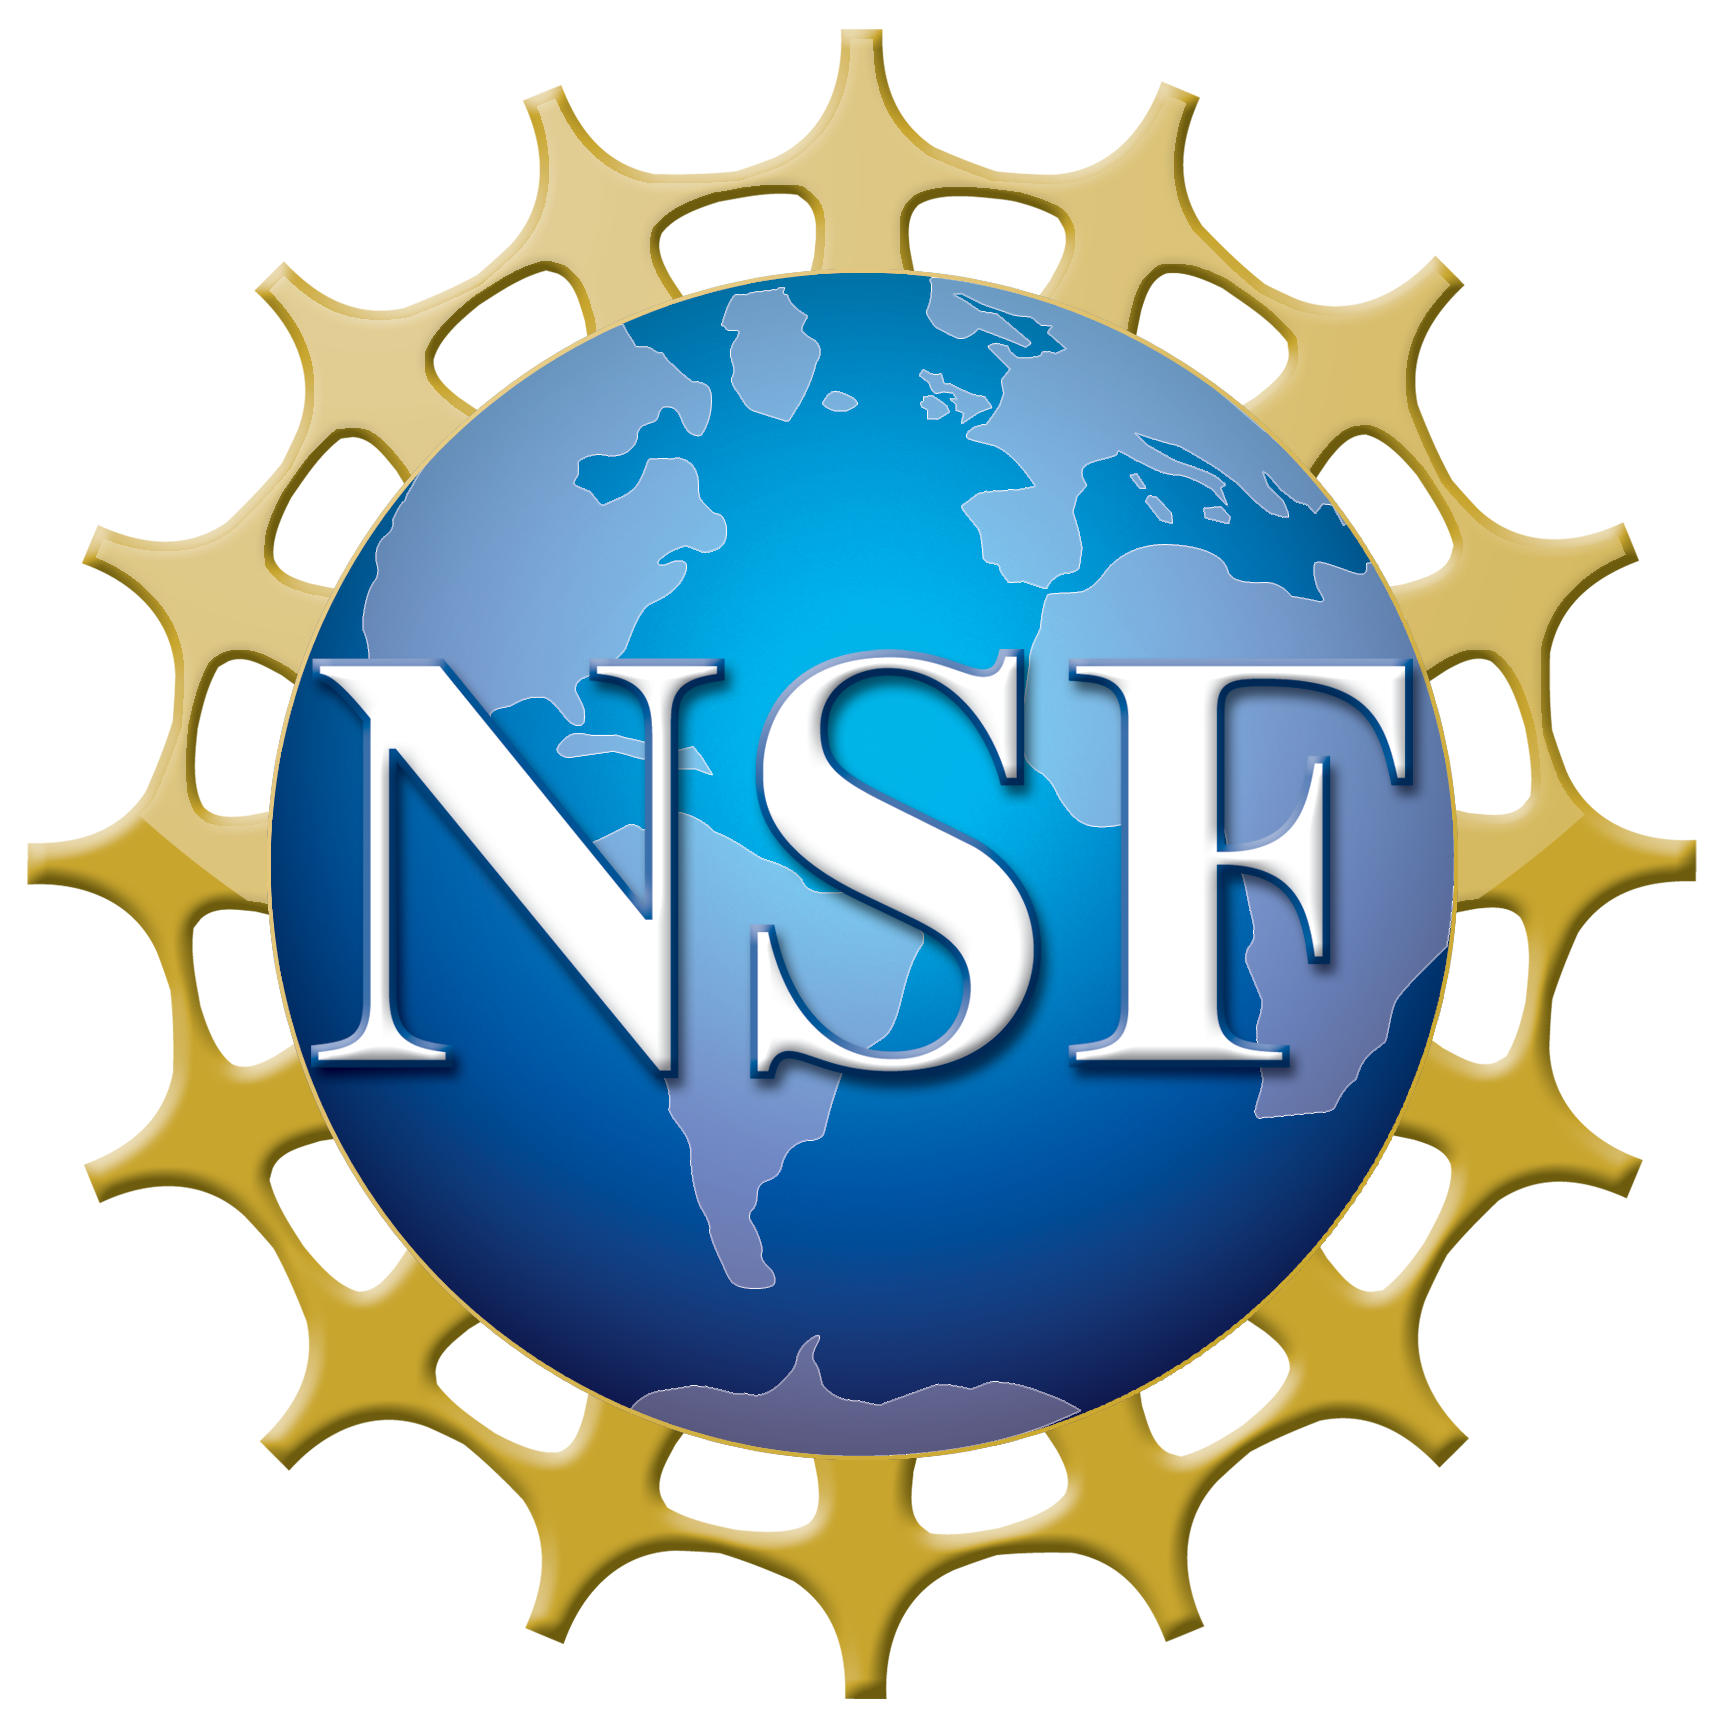 NSF - National Science Foundation logo